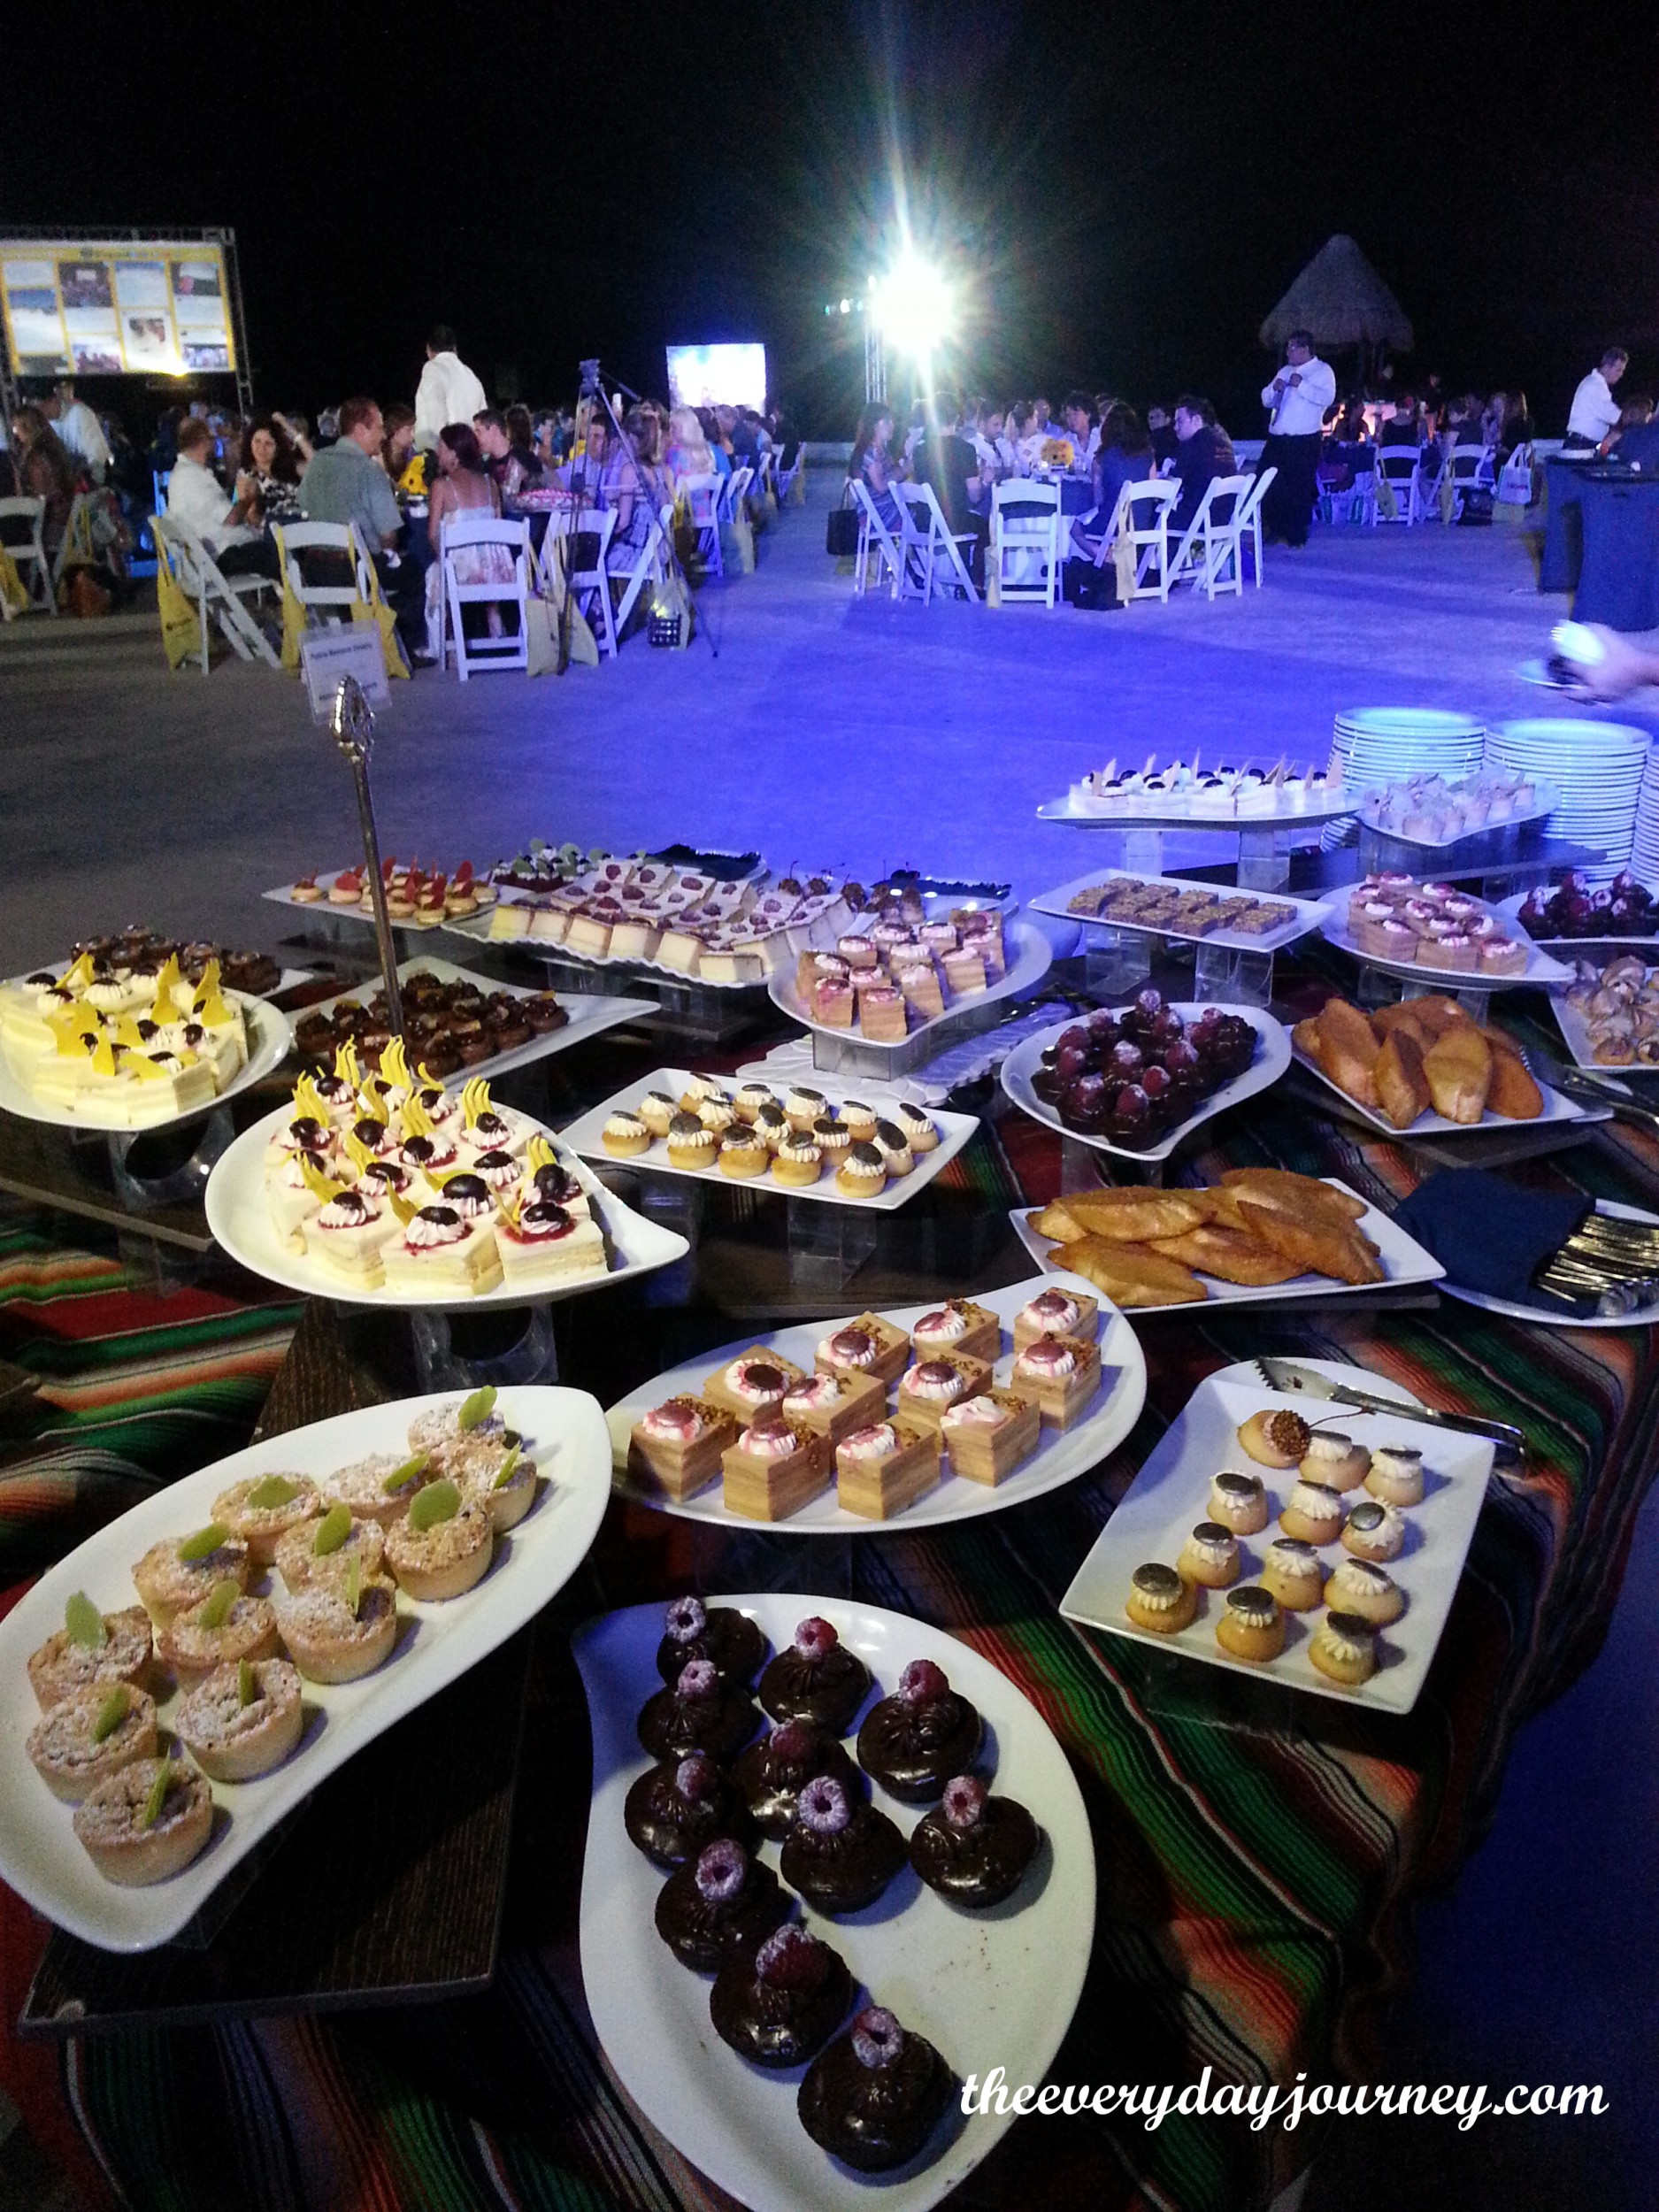 This is just the dessert table-imagine what else we ate at the Expedia party!